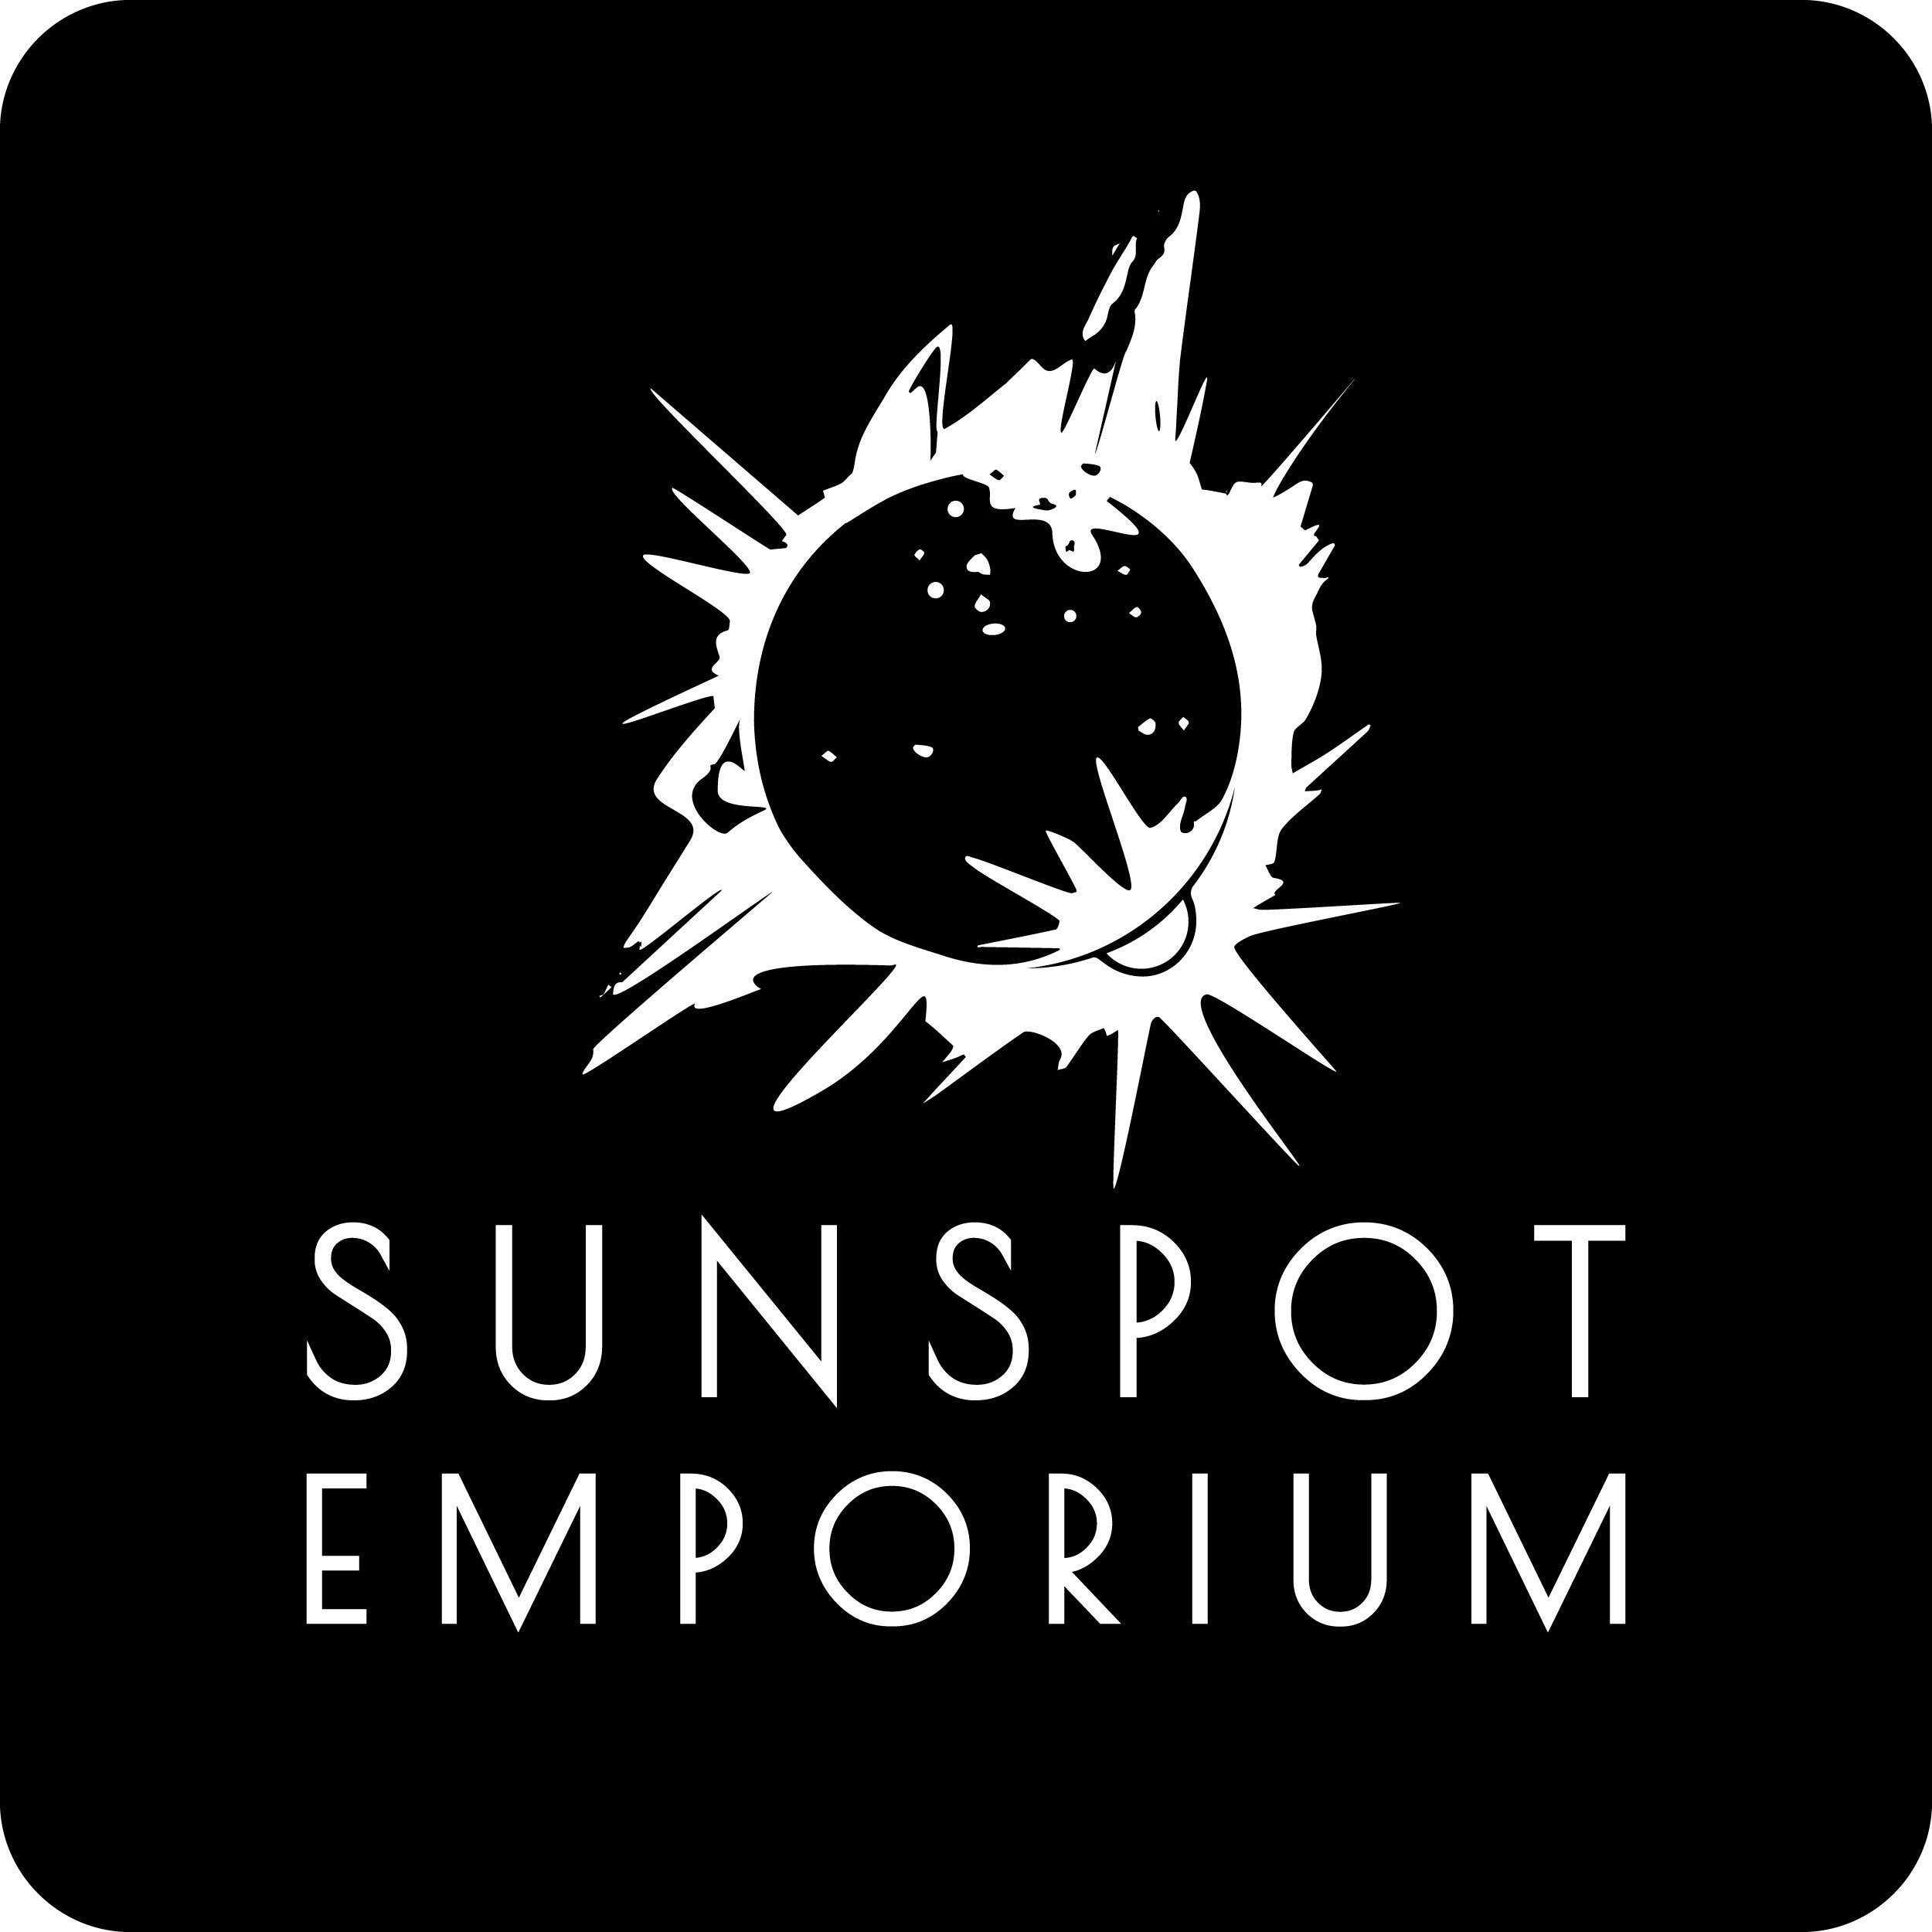 Sunspot Emporium